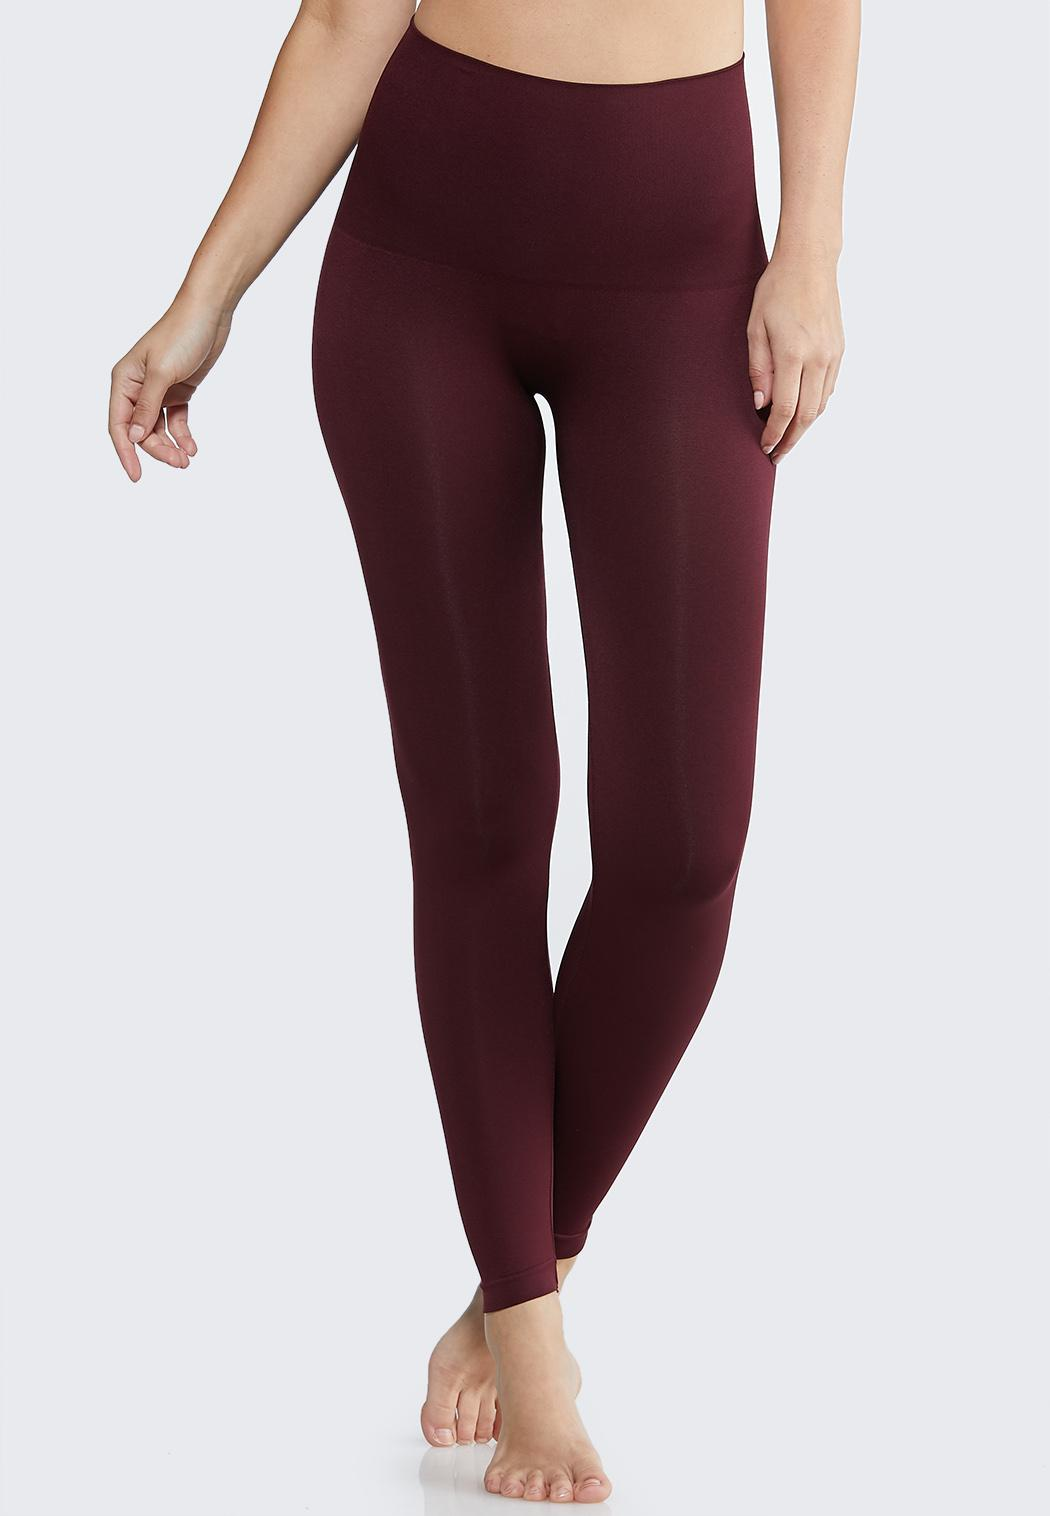 Plus Extended The Perfect Wine Shaping Leggings